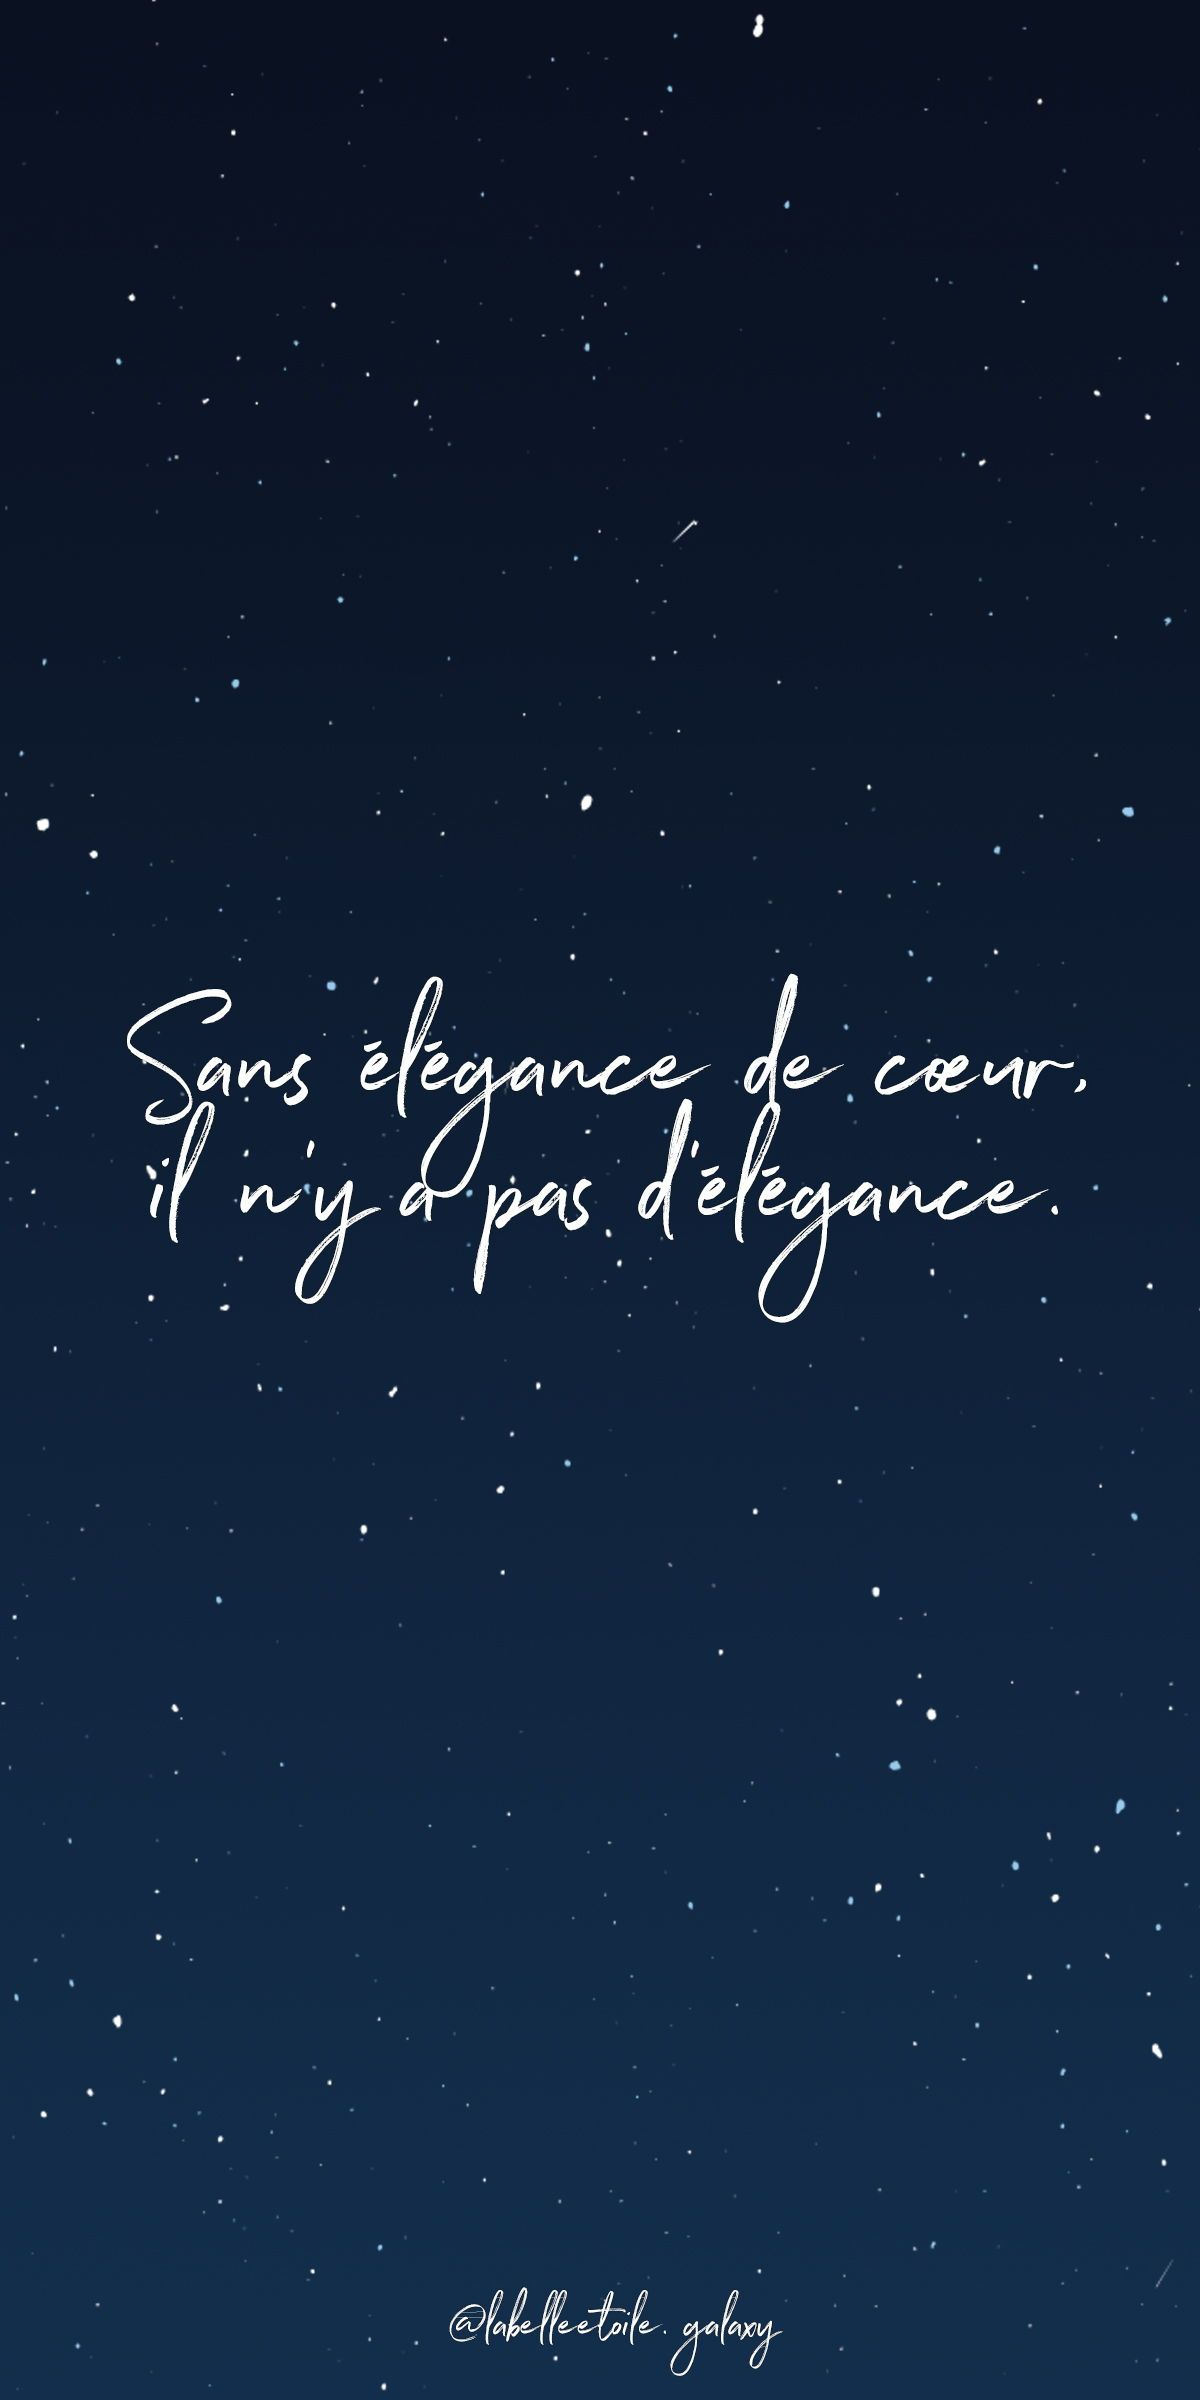 Without Elegance Of Heart There Is No Elegance Yves Saint Laurent French Fashion Designer French Quotes Inspirational Quotes Disney Learn French